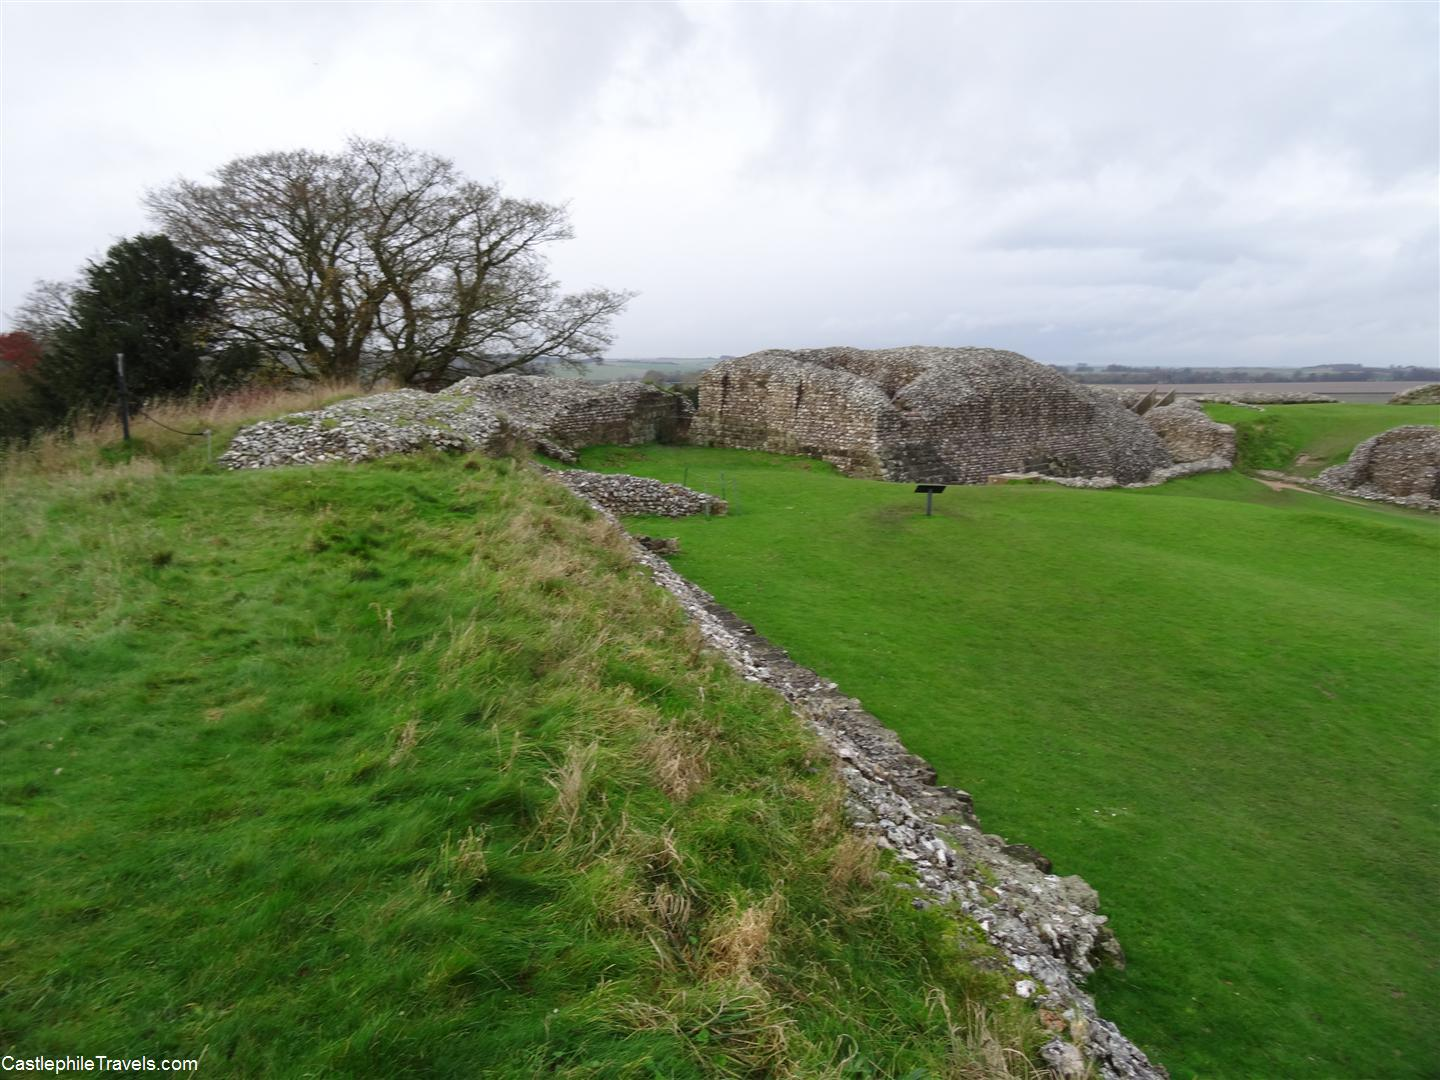 The ruins of Old Sarum